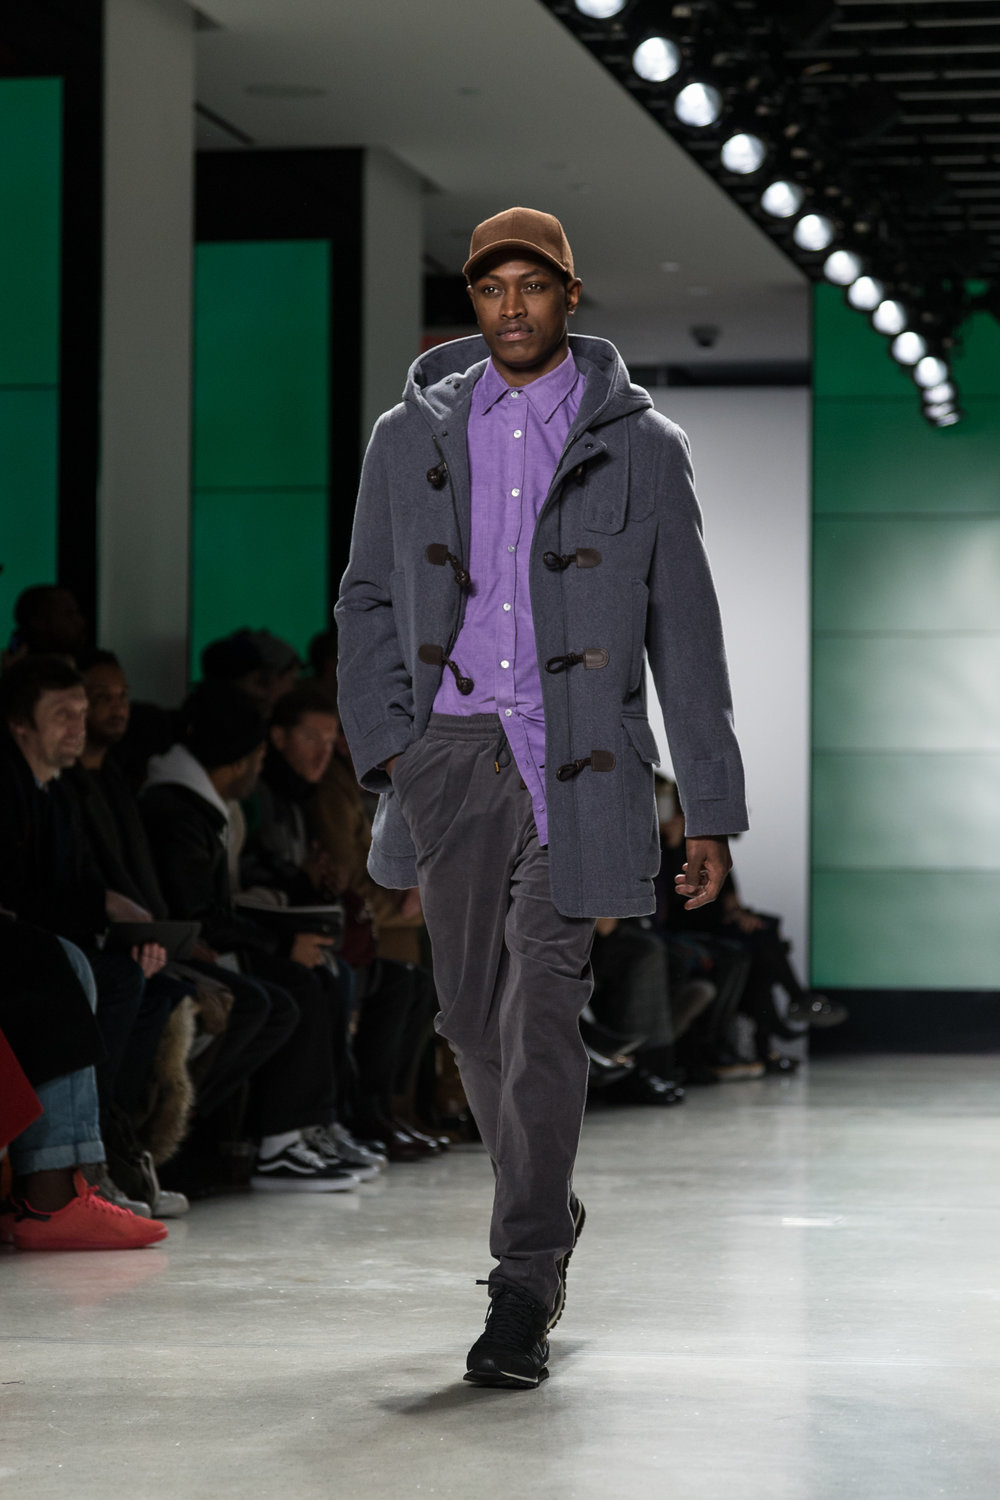 Brett Johnson_FW 2017 _Sherridon Poyer-3307.jpg